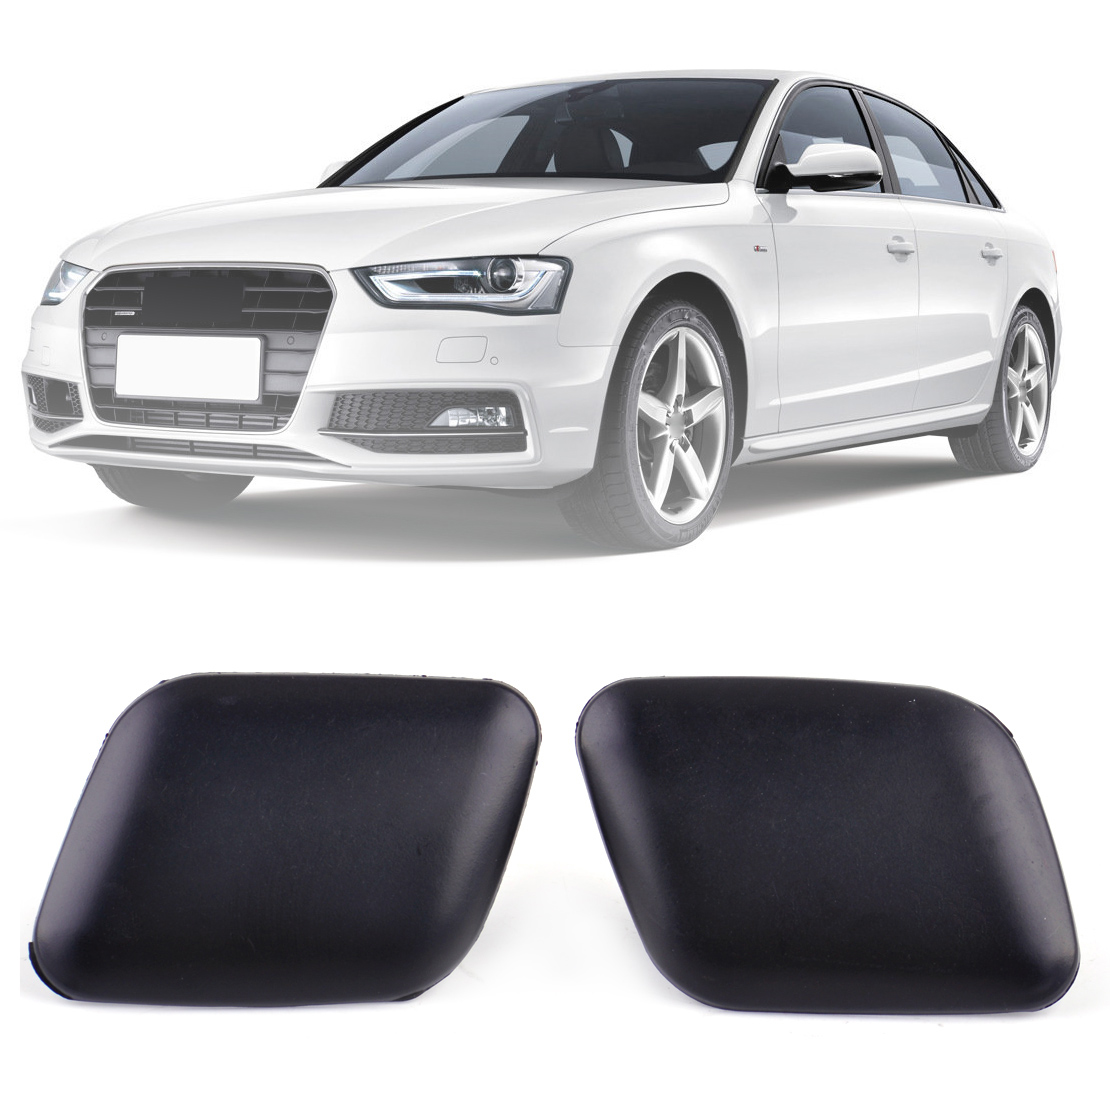 1 Pair Front Bumper Headlight Washer Cover Cap Fits Audi